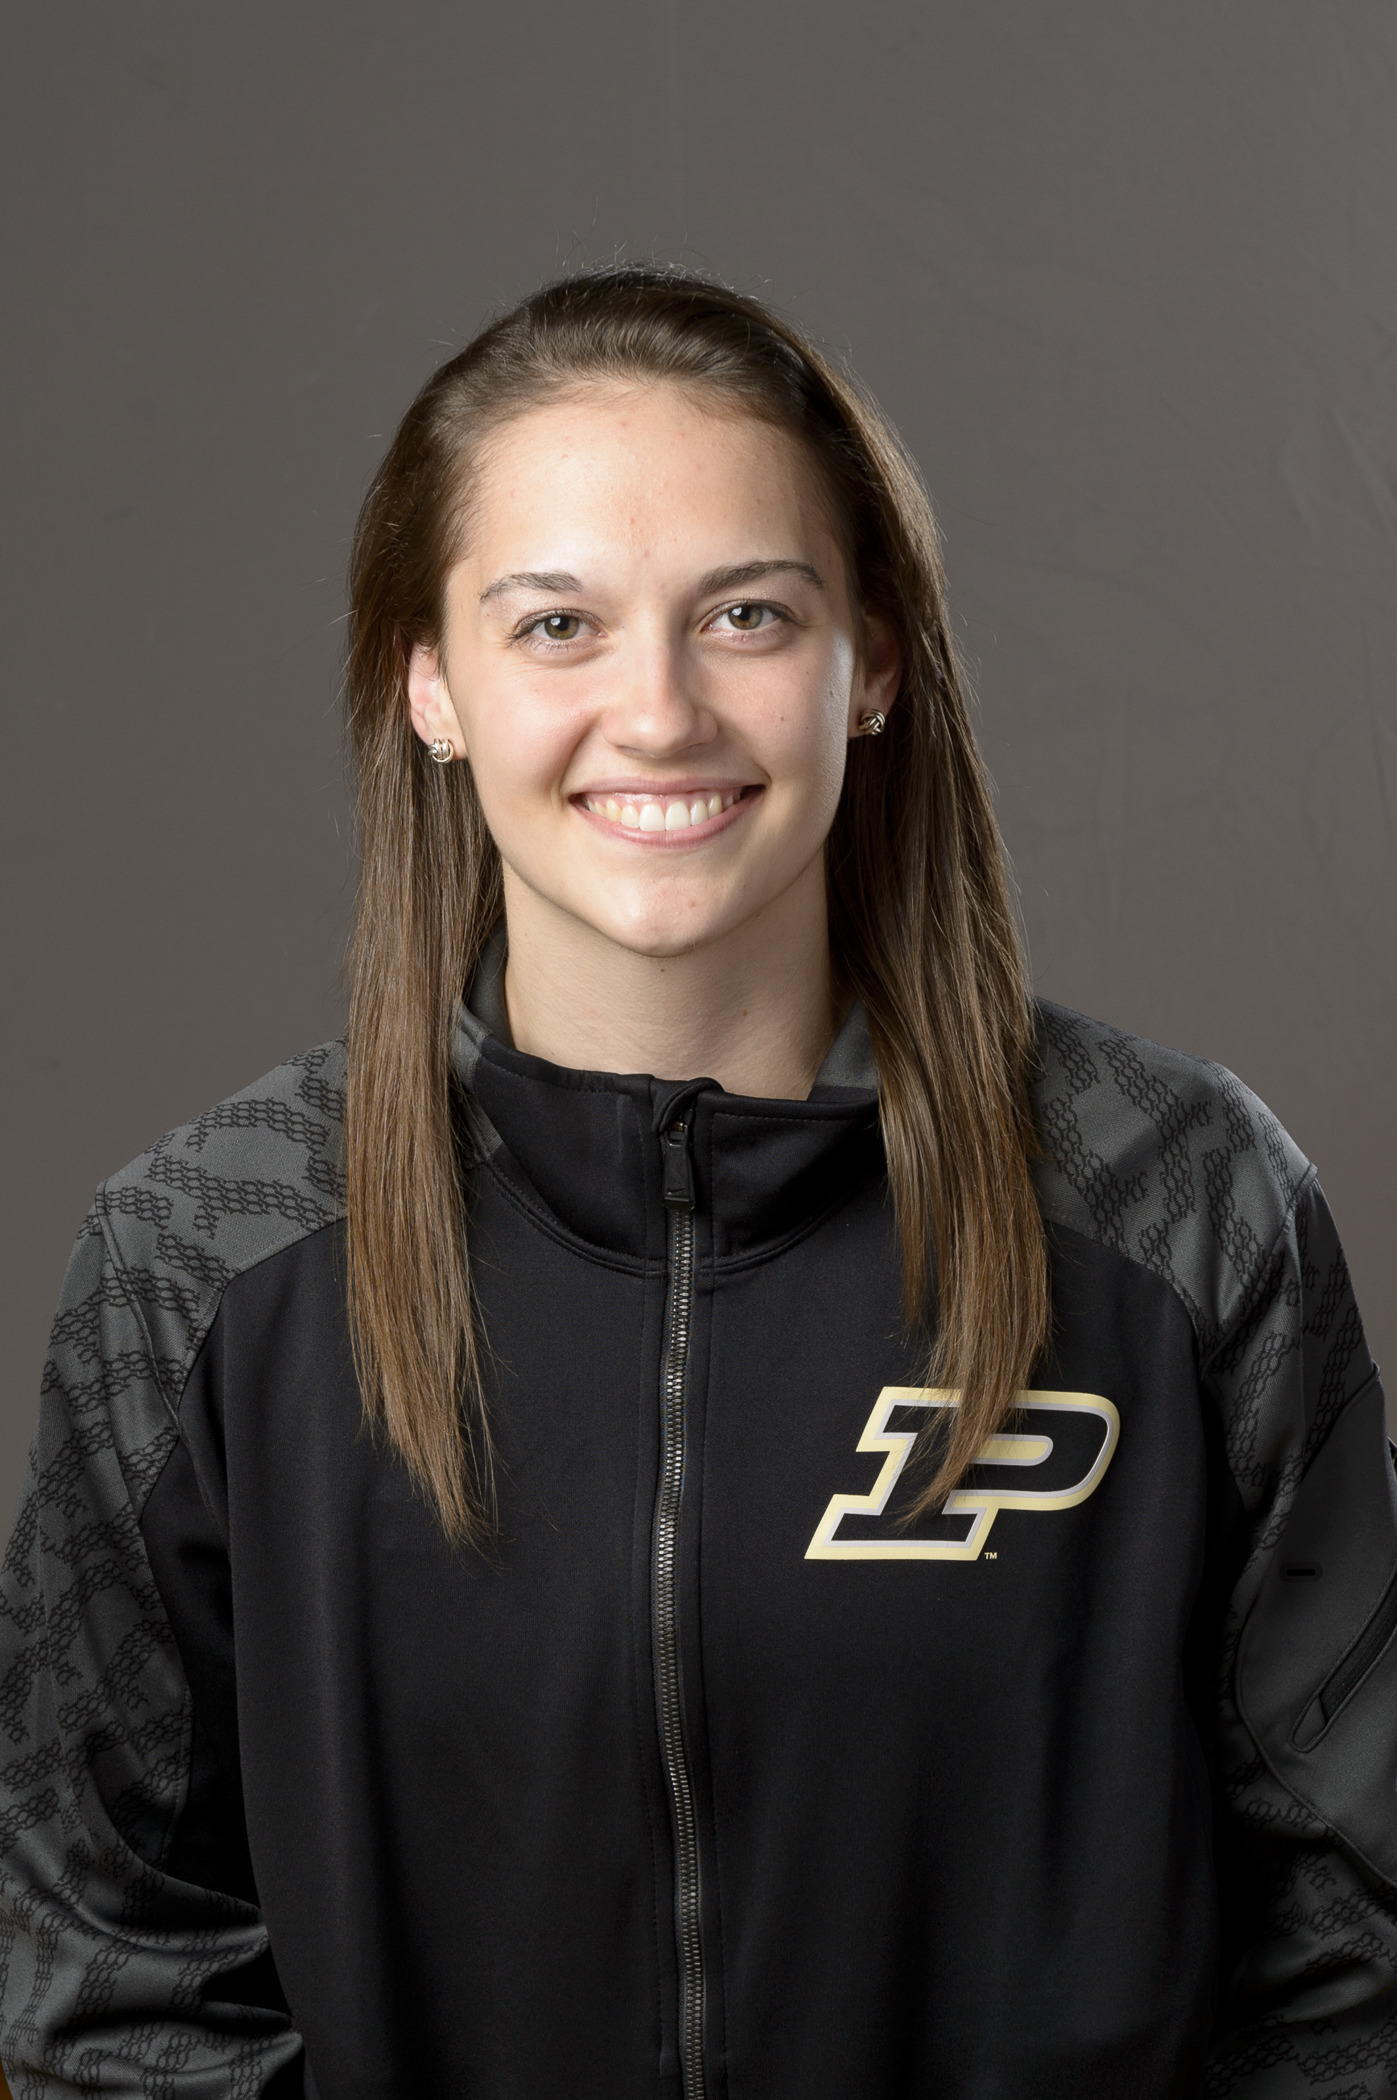 Evans averaged 2.34 digs per set as a redshirt freshman setter/hitter for the Boilermakers in 2014.